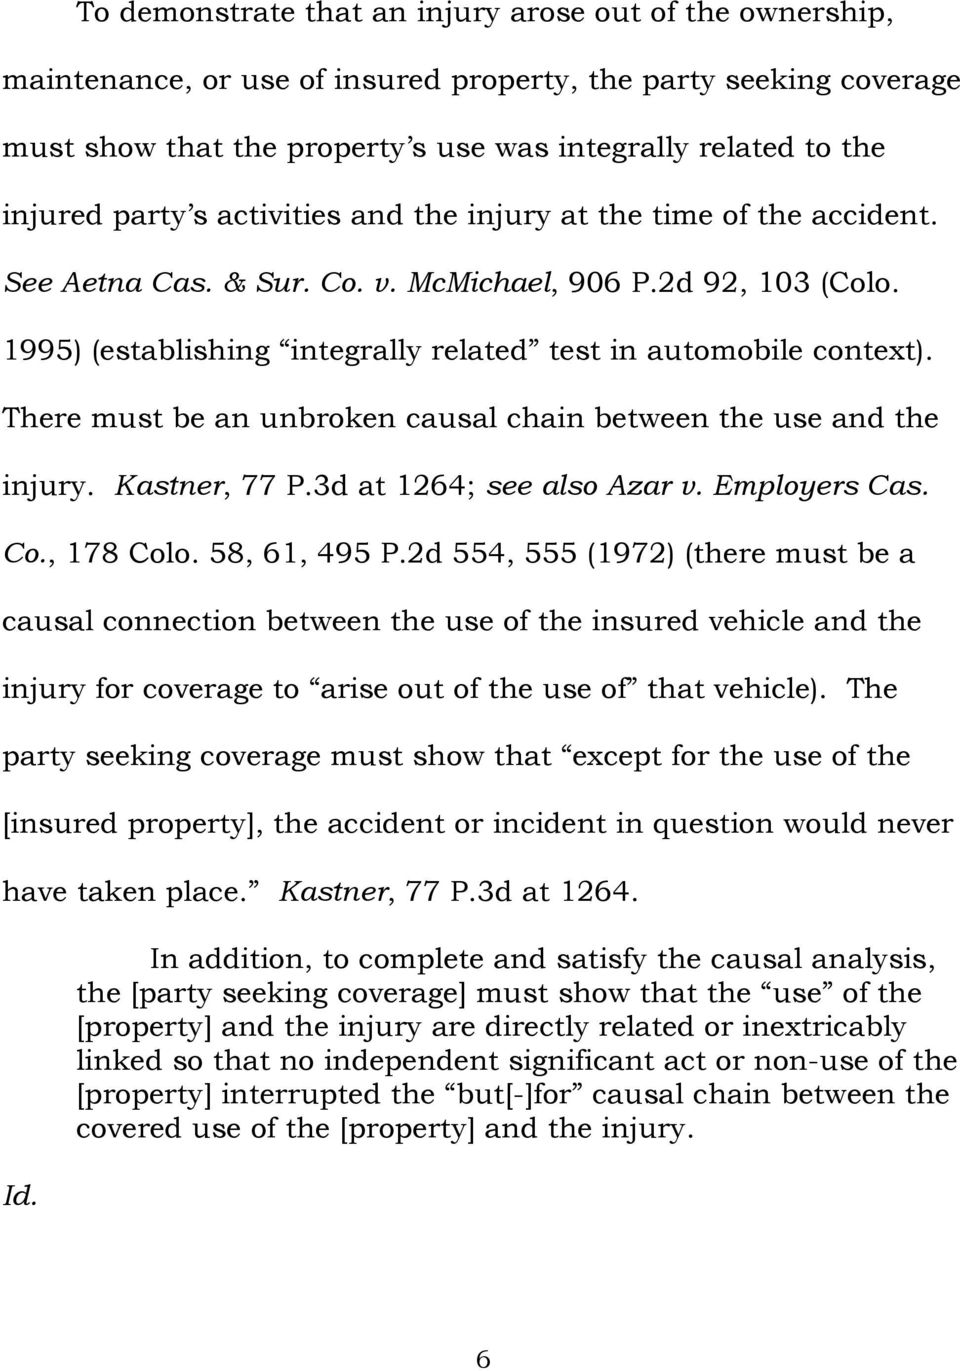 There must be an unbroken causal chain between the use and the injury. Kastner, 77 P.3d at 1264; see also Azar v. Employers Cas. Co., 178 Colo. 58, 61, 495 P.